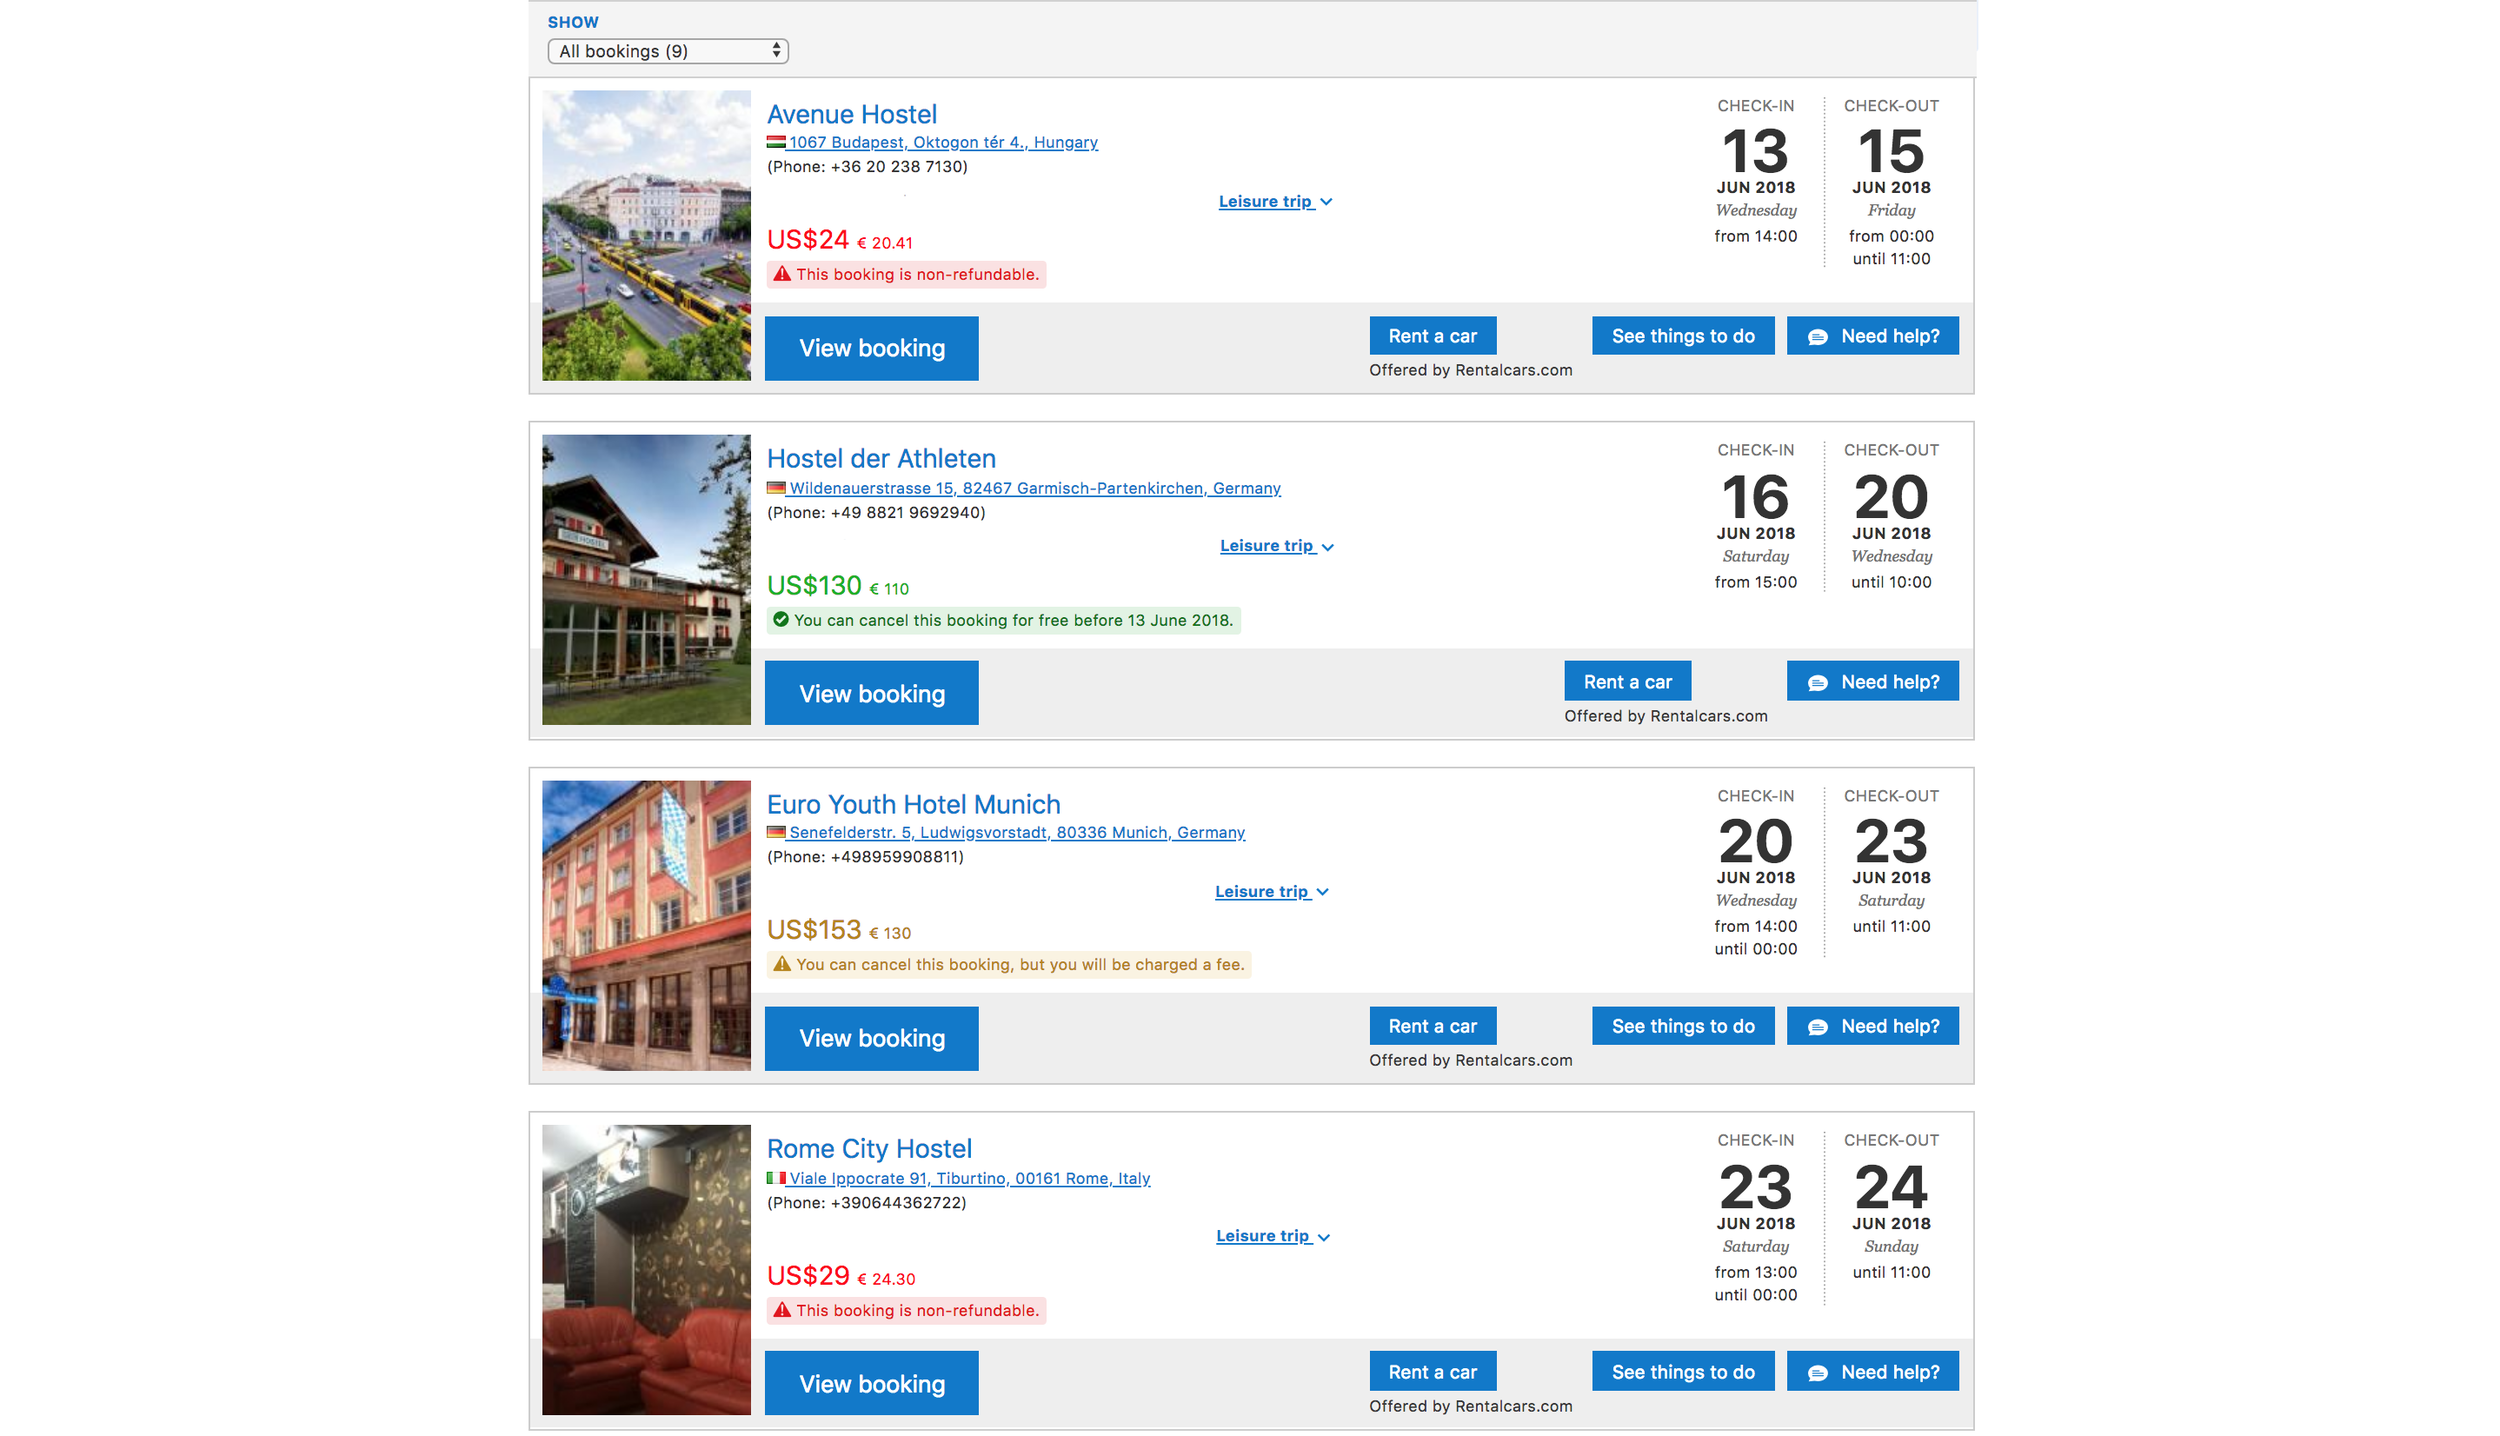 Example of booking page for Booking.com: